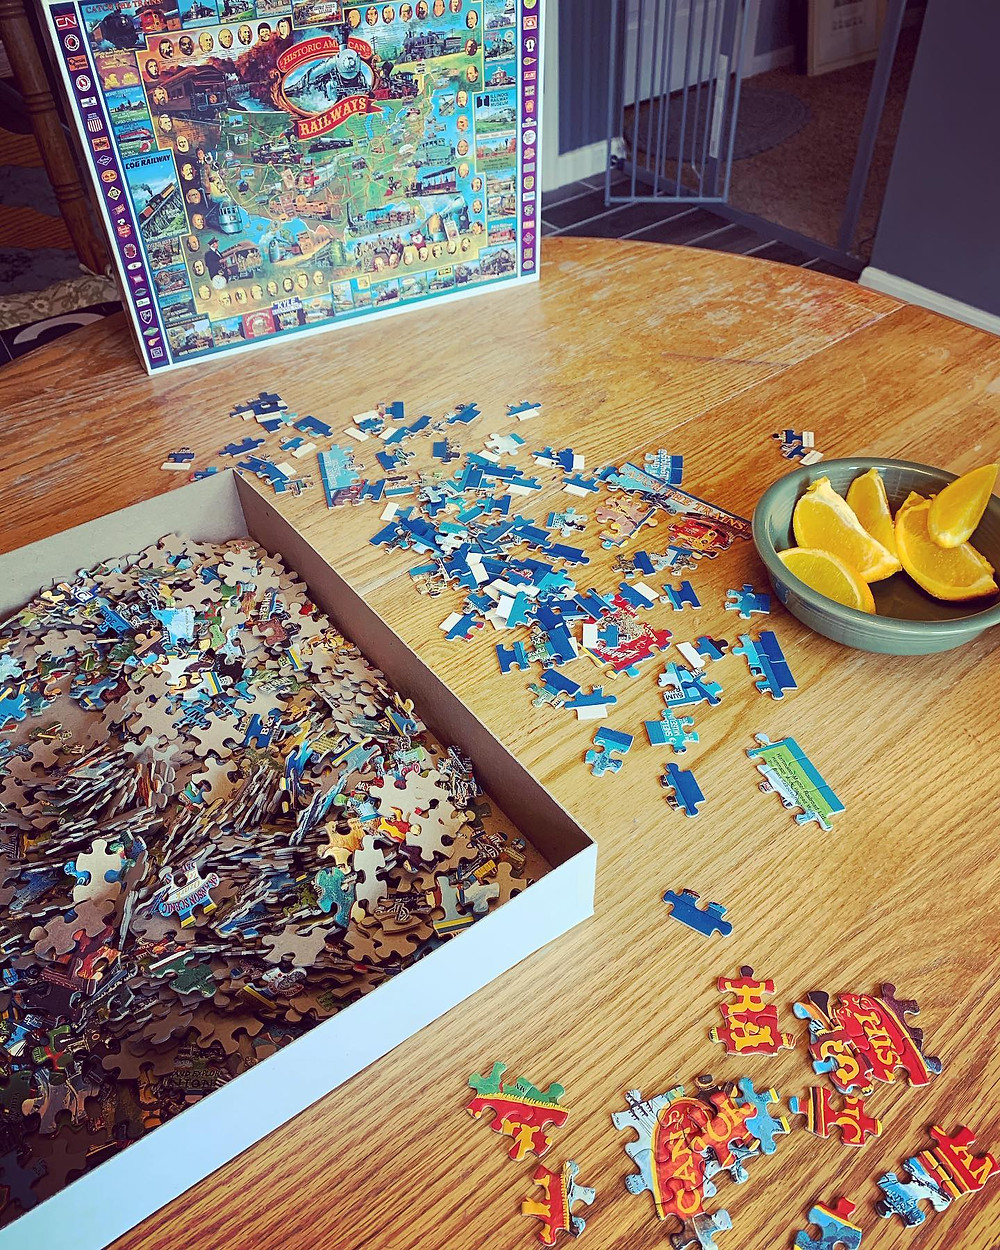 Puzzles, oranges, and worksheets! Oh my!